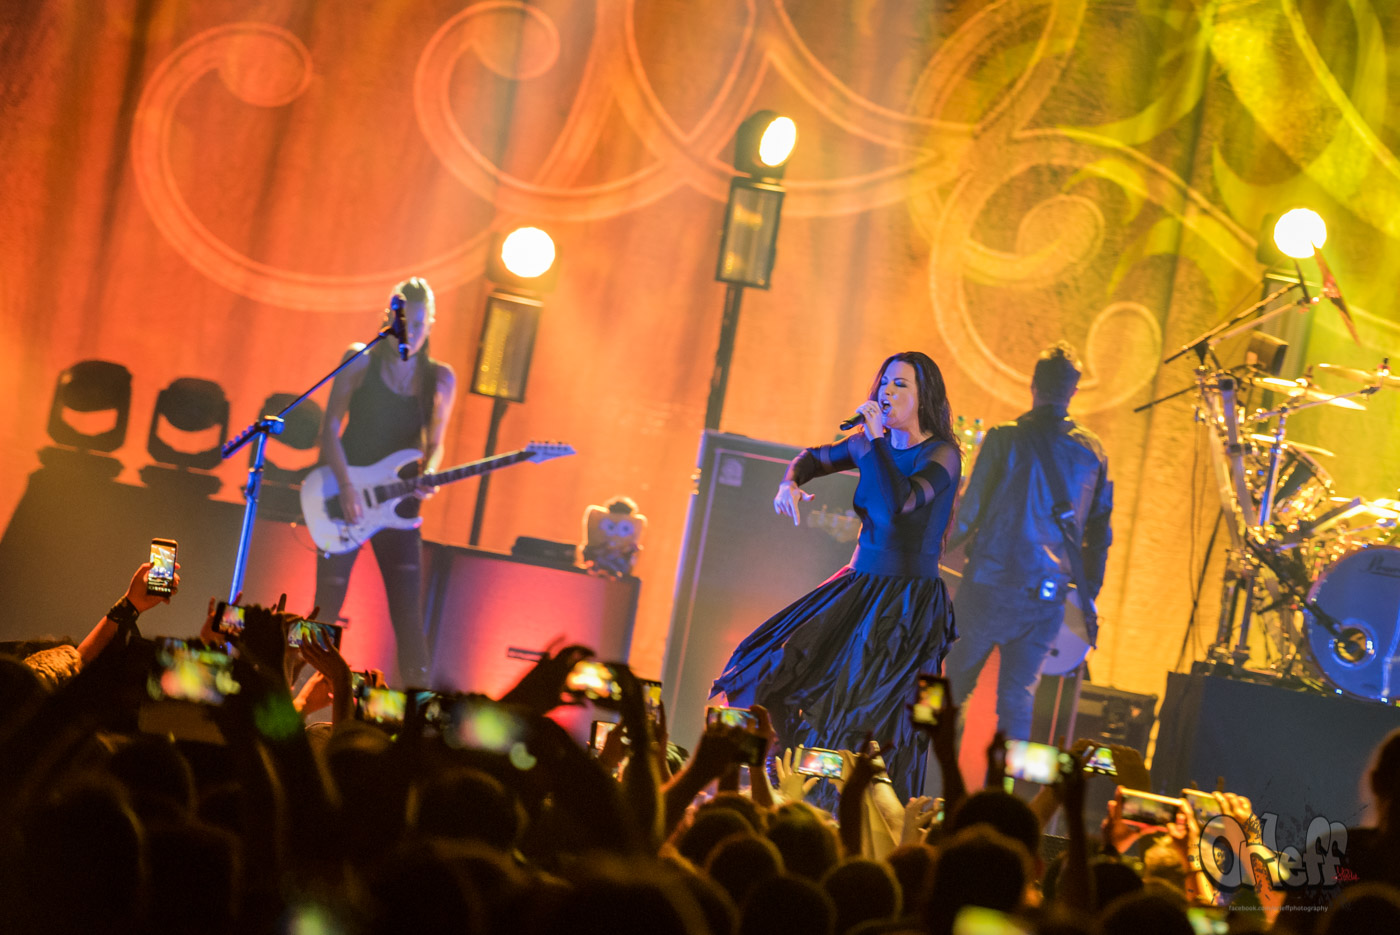 Evanescence @ Arena Armeets, 2019